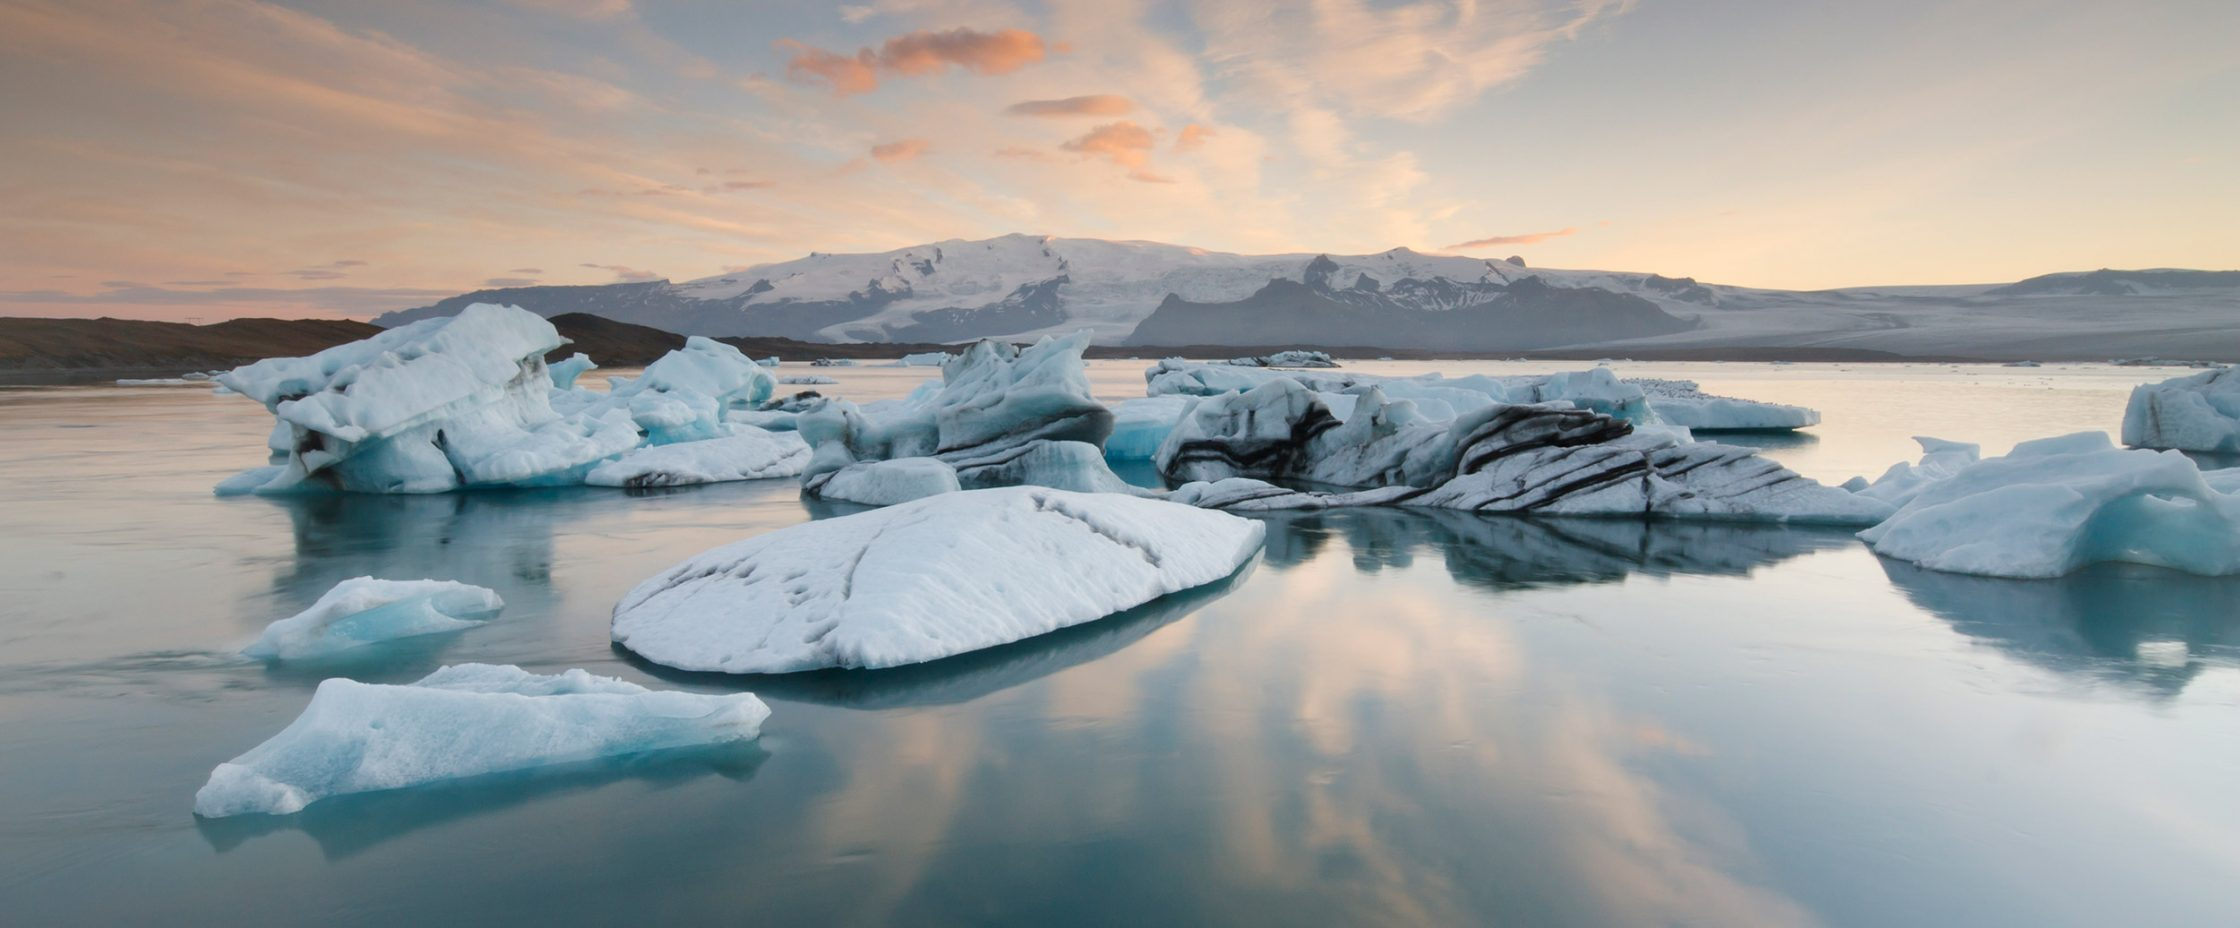 Icebergs floating in the water at sunset.